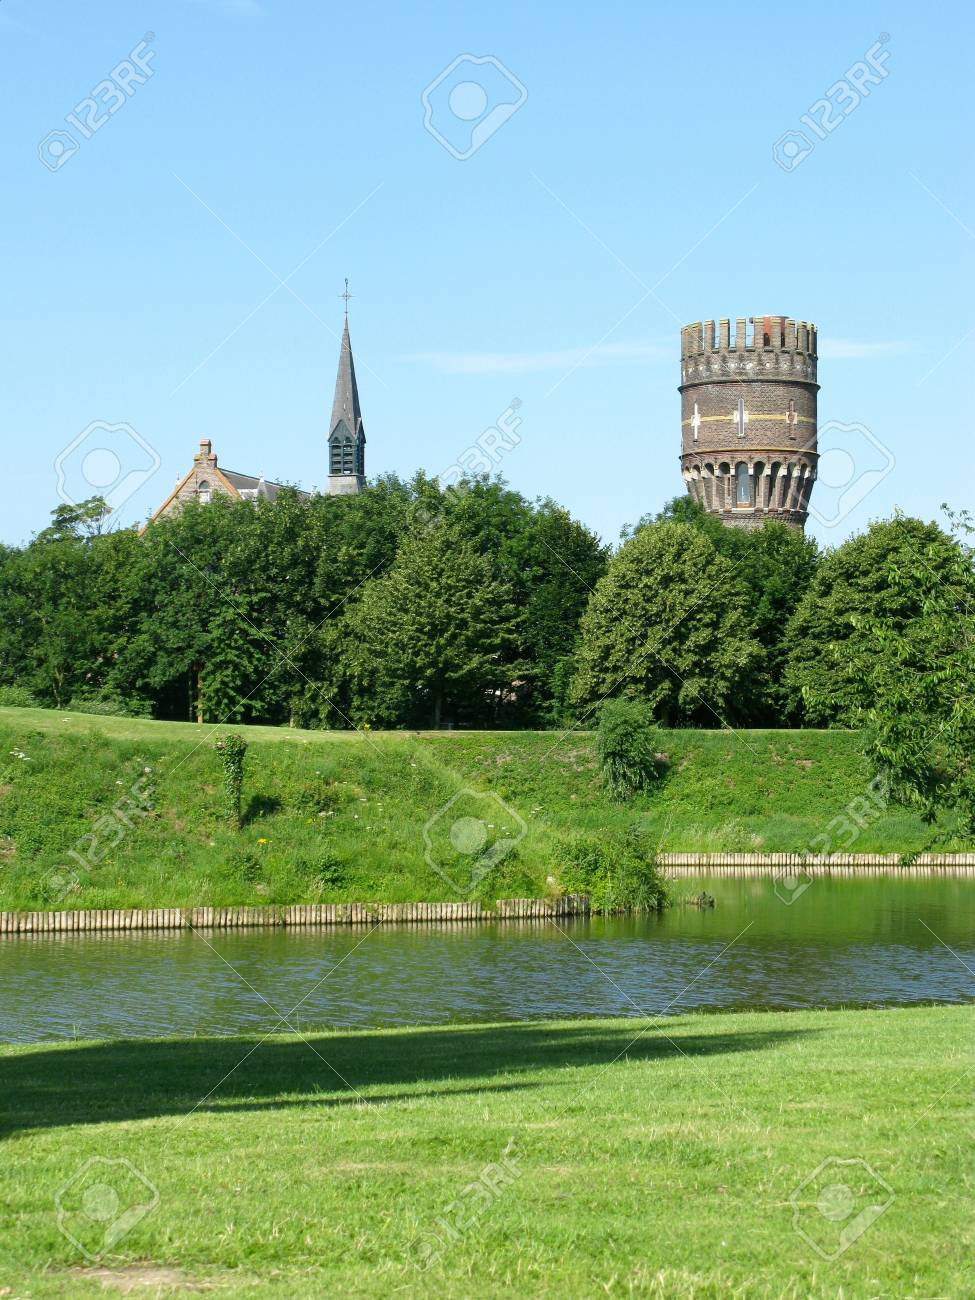 In De File Hellevoetsluis The City Wall And The Water Tower Of Hellevoetsluis In The Netherlands